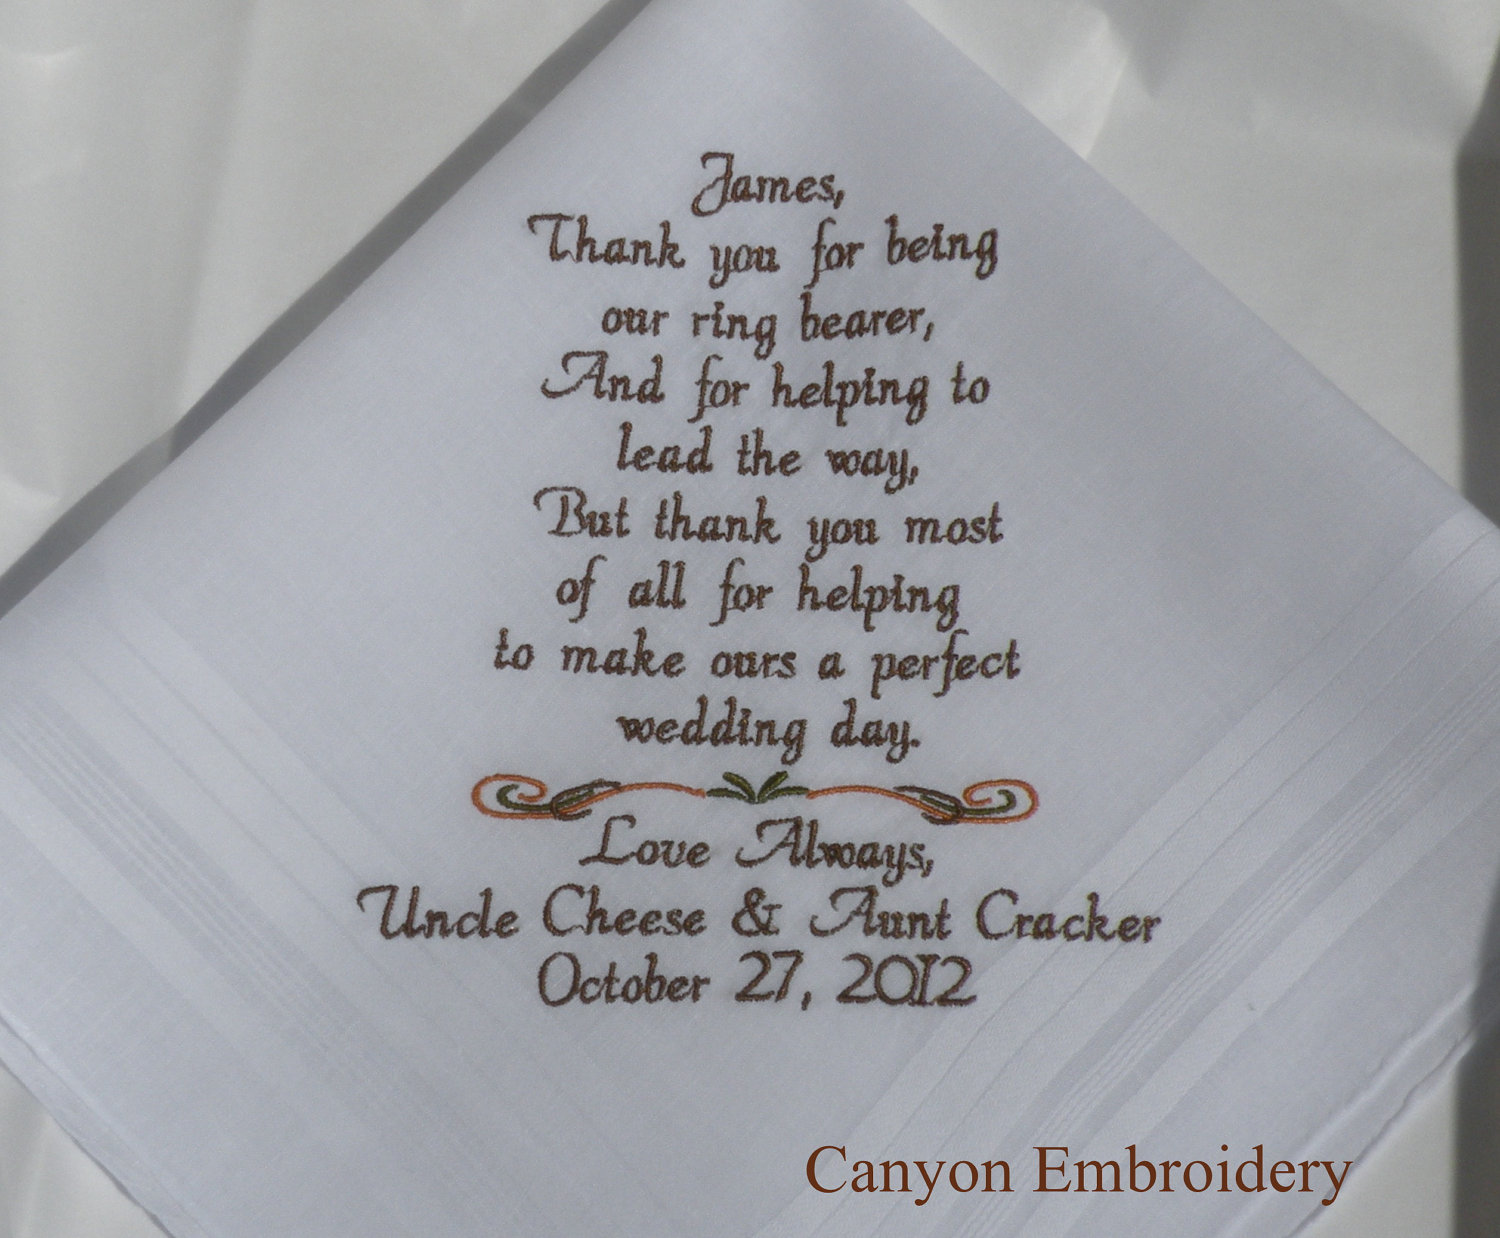 Wedding Gift Thank You Poem : Funny Thank You Poem For Wedding Gifts - Wedding Invitation Sample